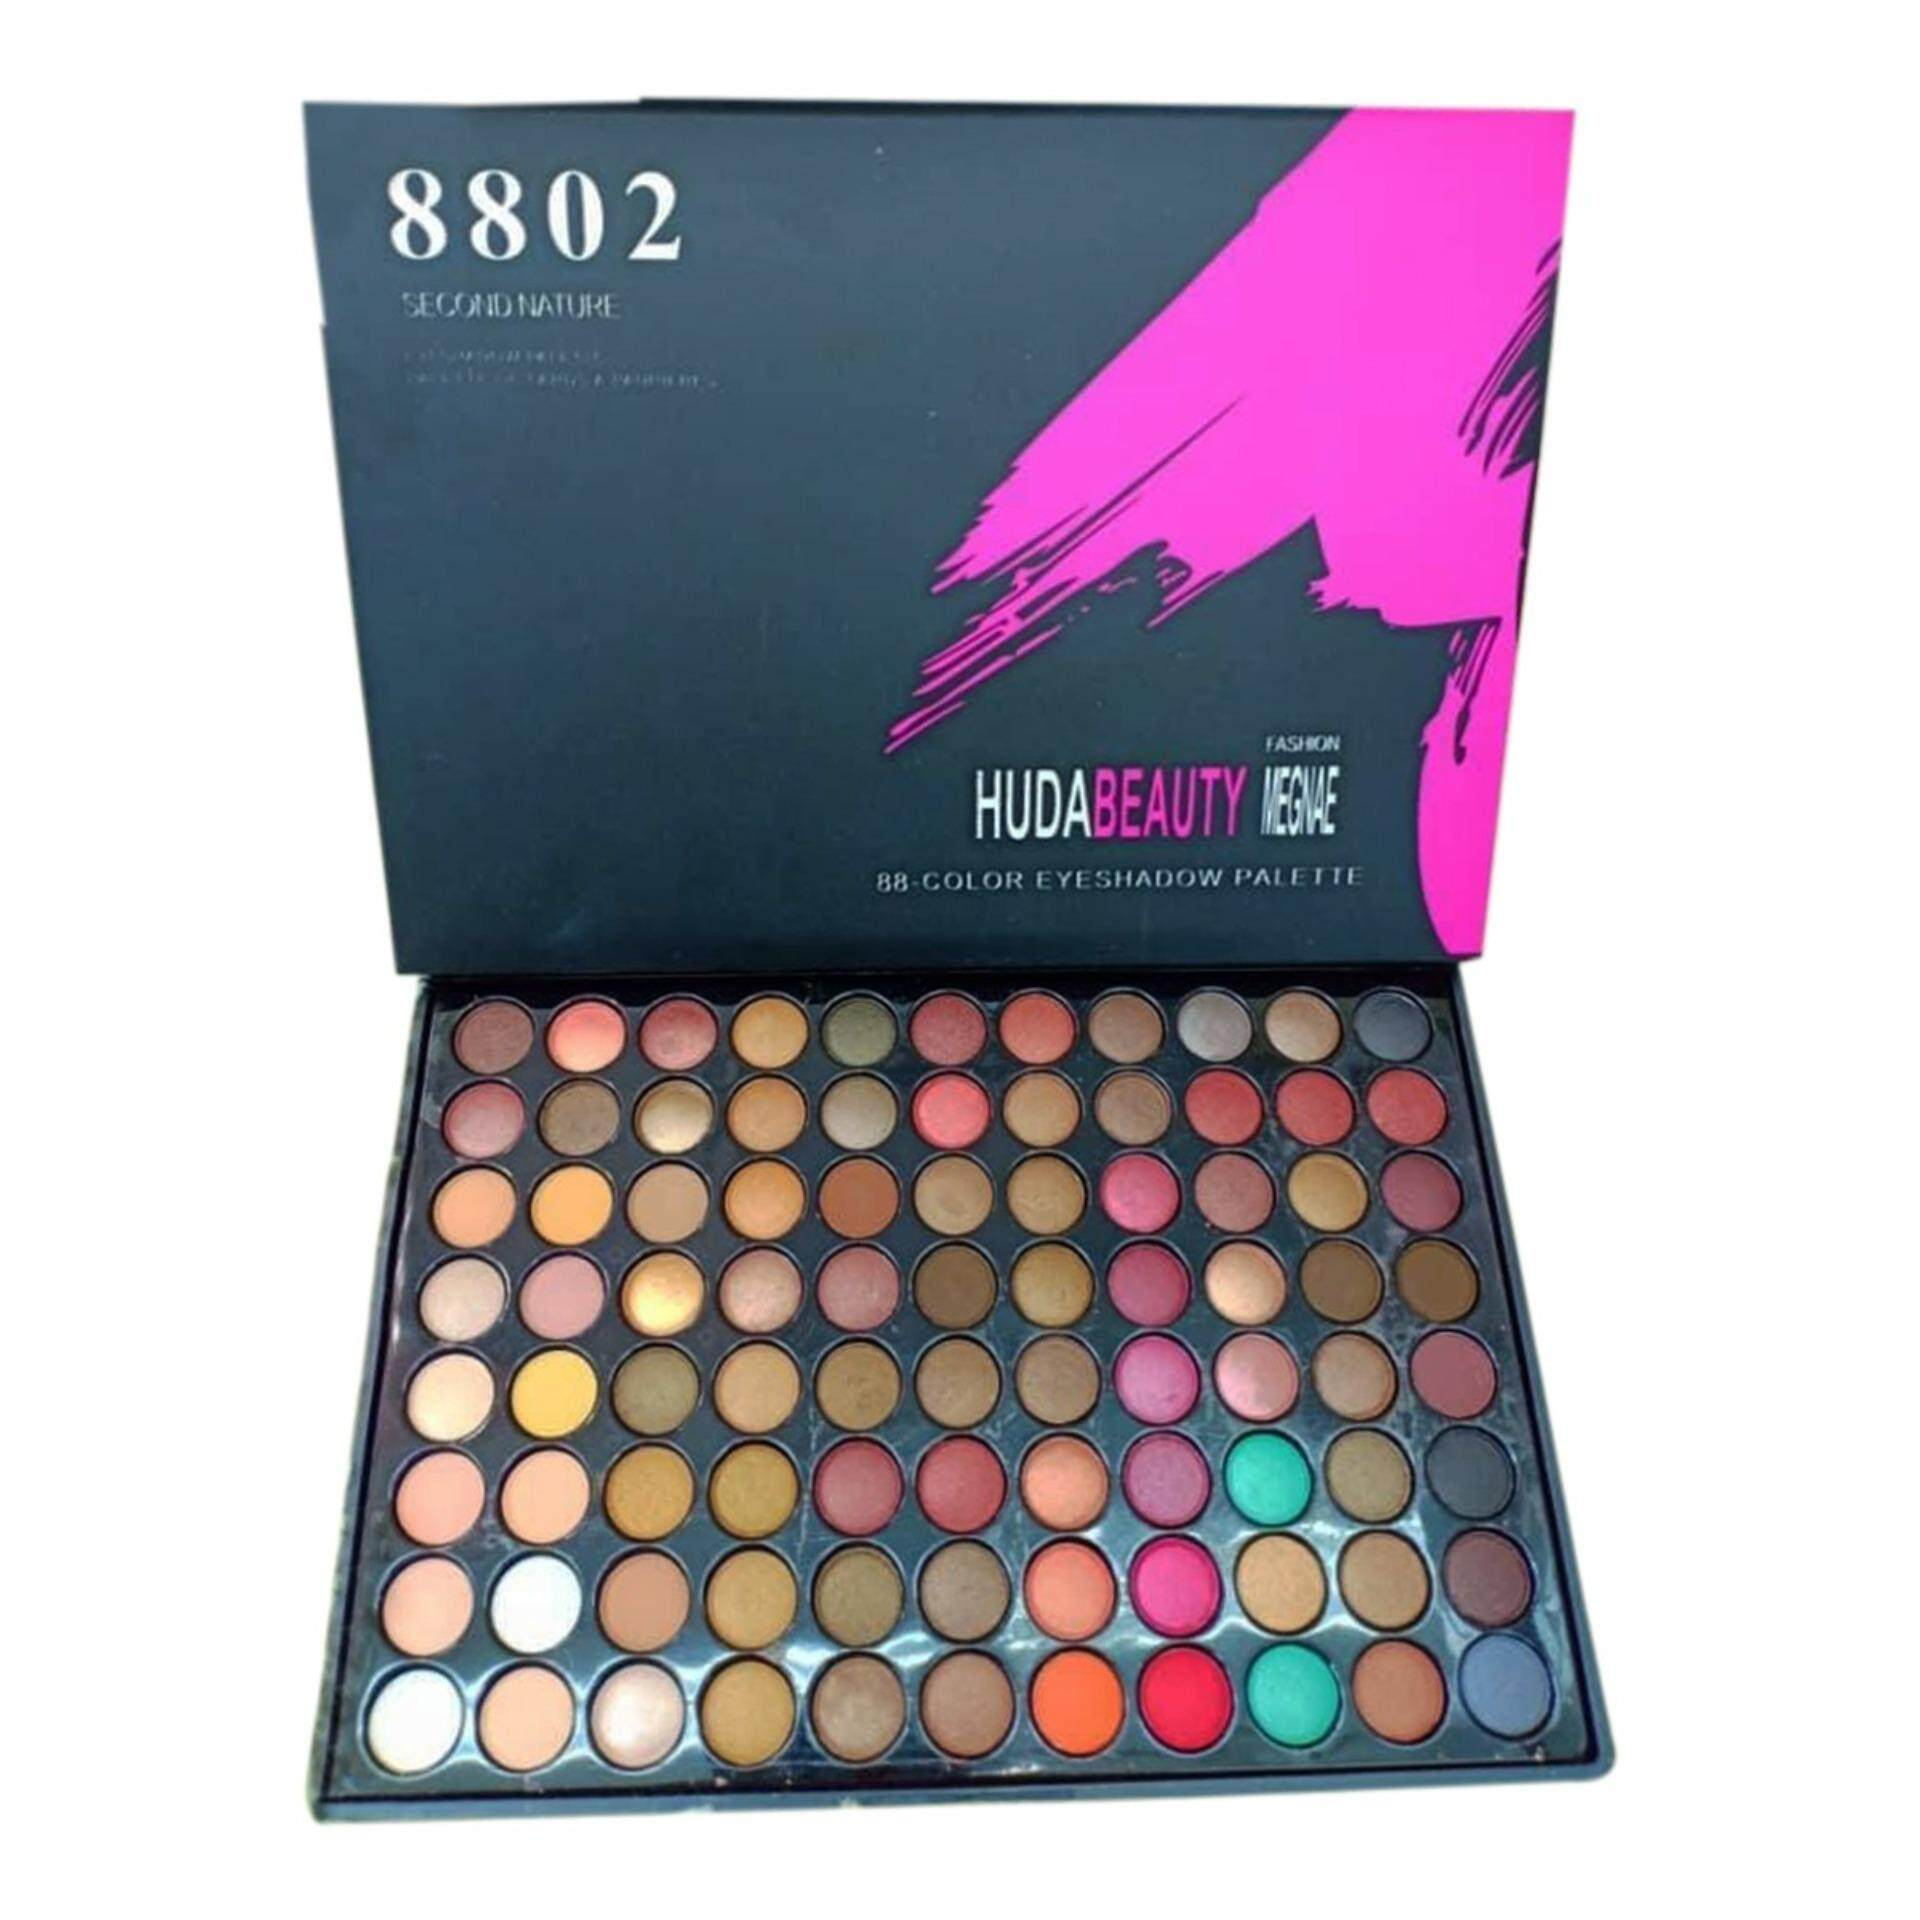 Branded Multicolor Eye Shadow Palette 88 Gorgeous Colors With Free Brush